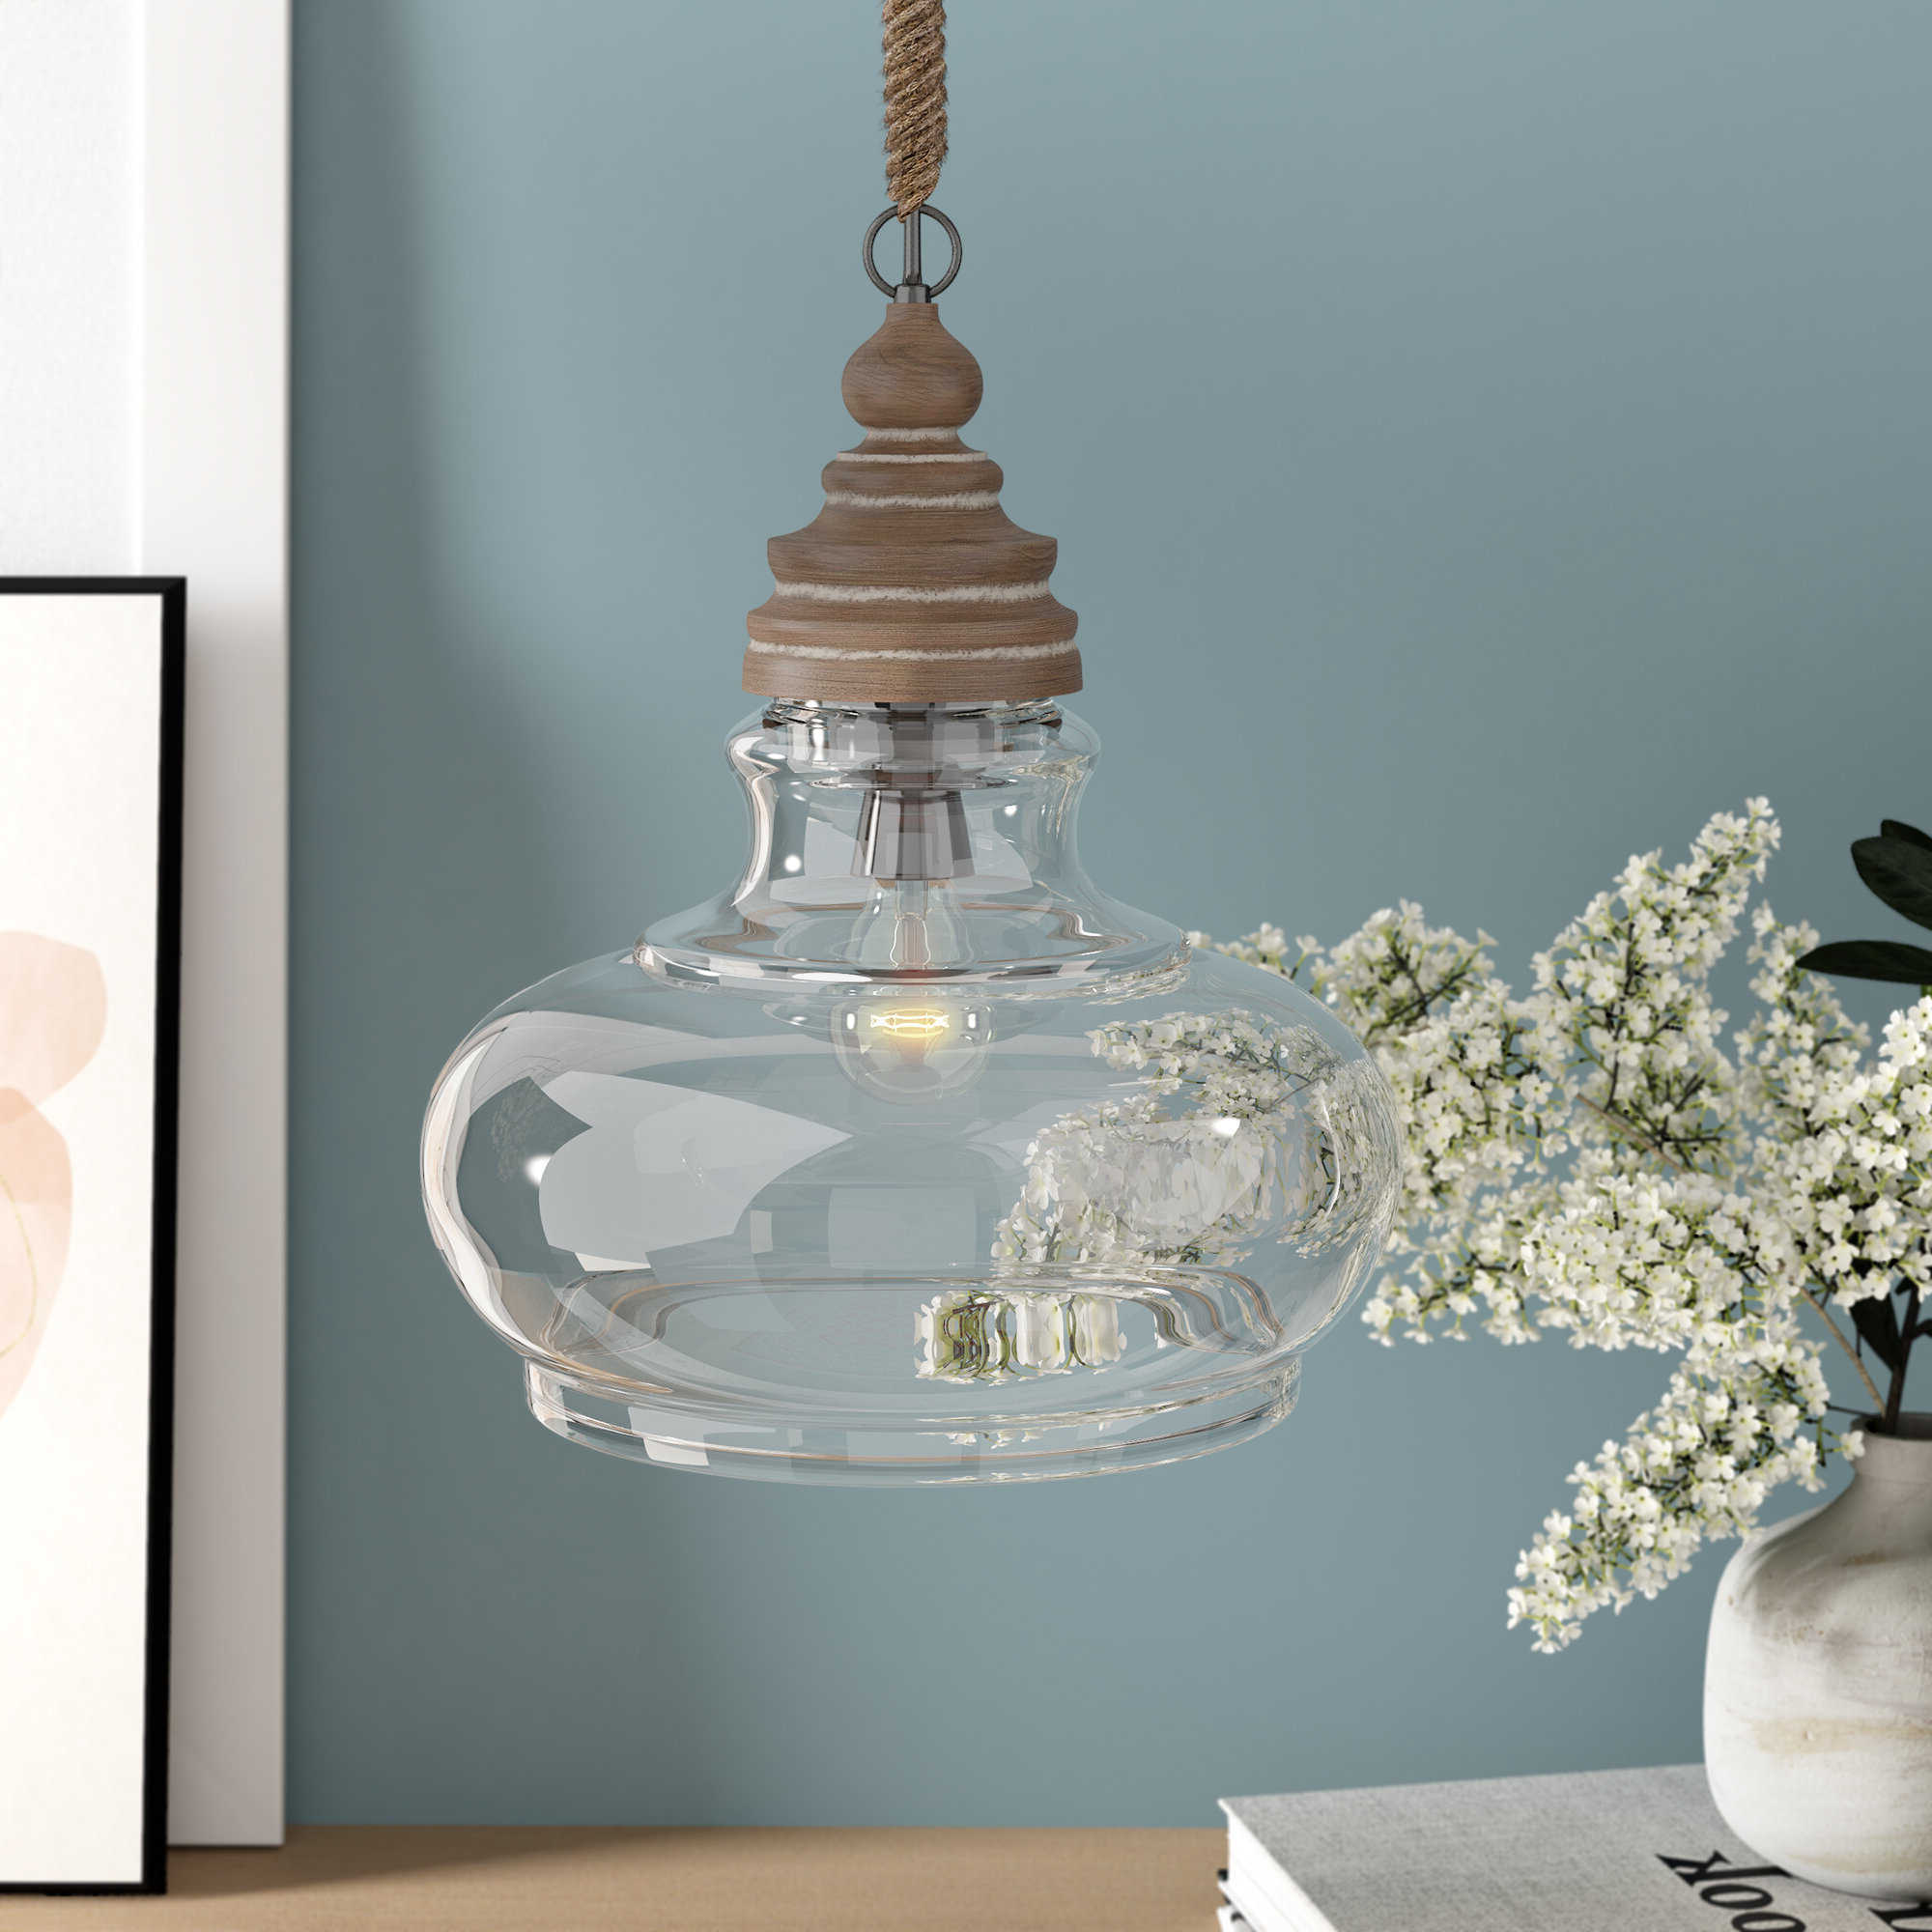 Laurel Foundry Modern Farmhouse Maelle 1 Light Single Bell Pendant Within 2019 Carey 1 Light Single Bell Pendants (View 12 of 20)